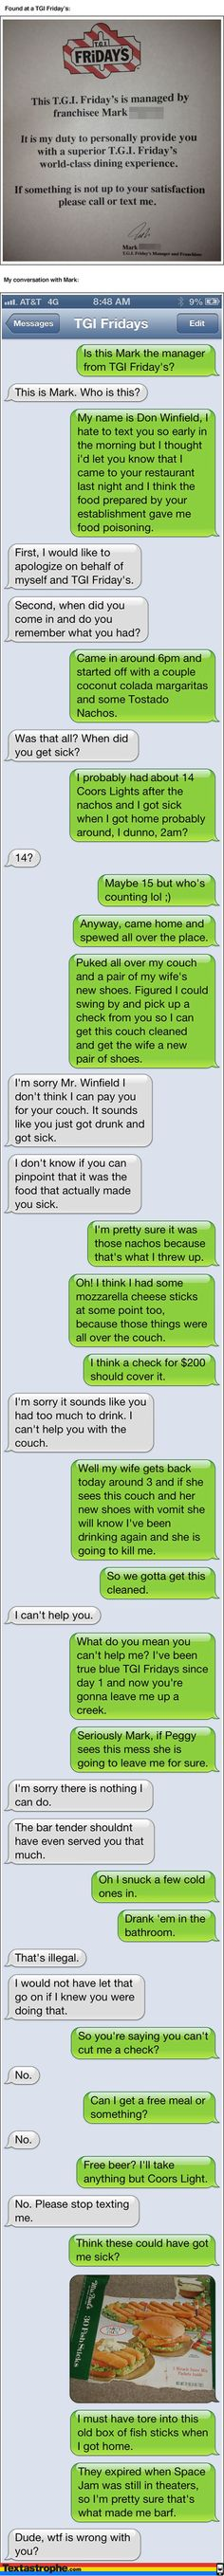 Distractify   The 9 Most Epic Texting Pranks Of All Time. The 3rd One Killed Me...LOL!